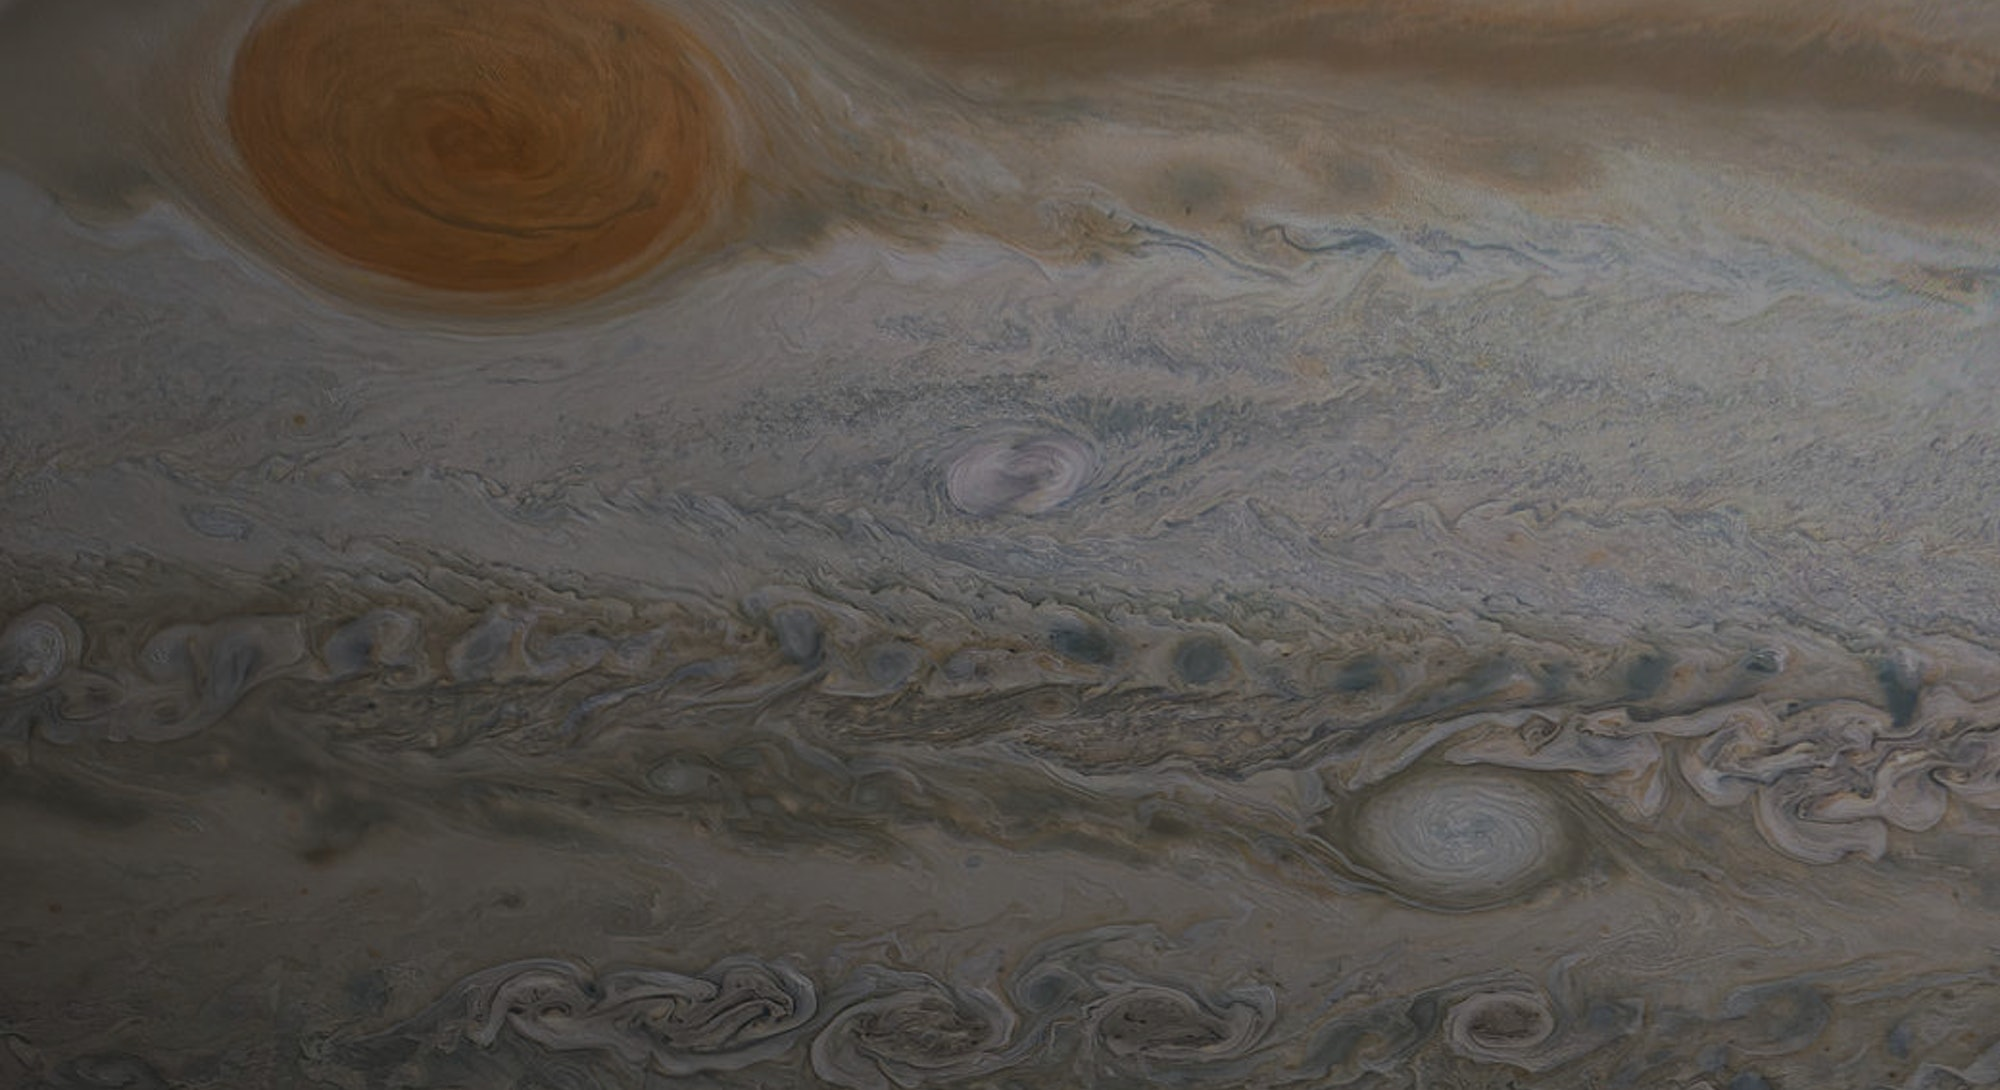 Jupiter's marbled appearance with its Red Spot in view